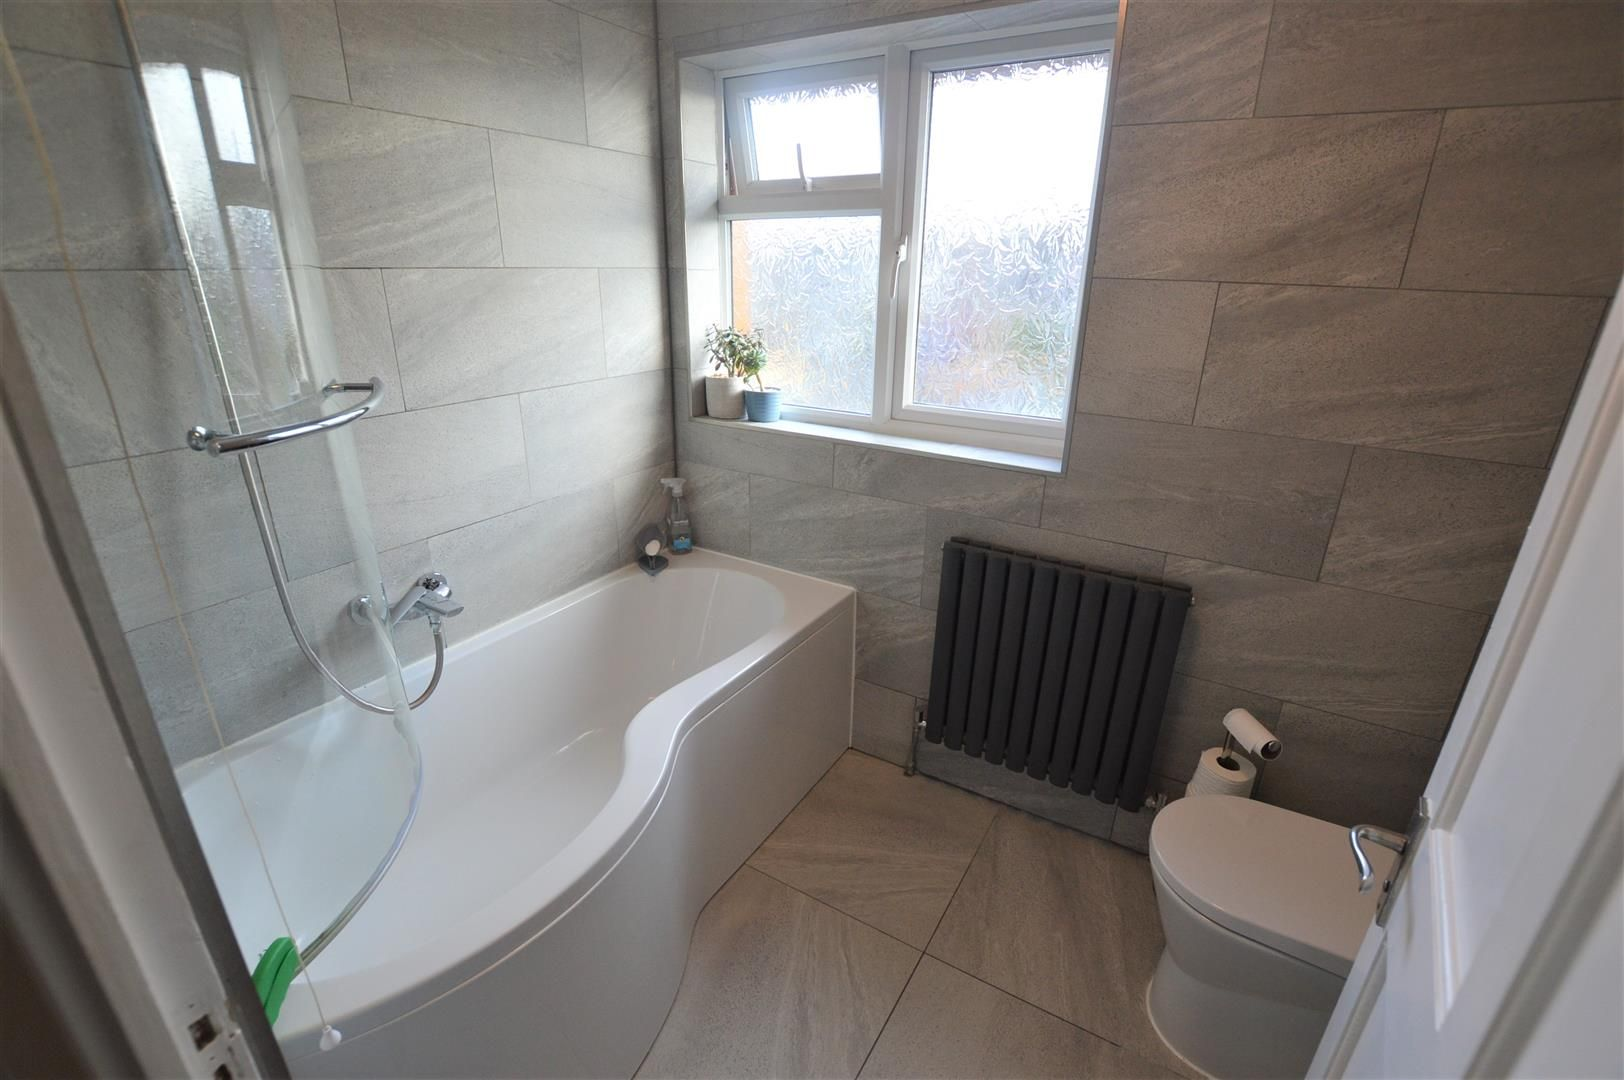 3 bed semi-detached for sale in Leominster  - Property Image 6